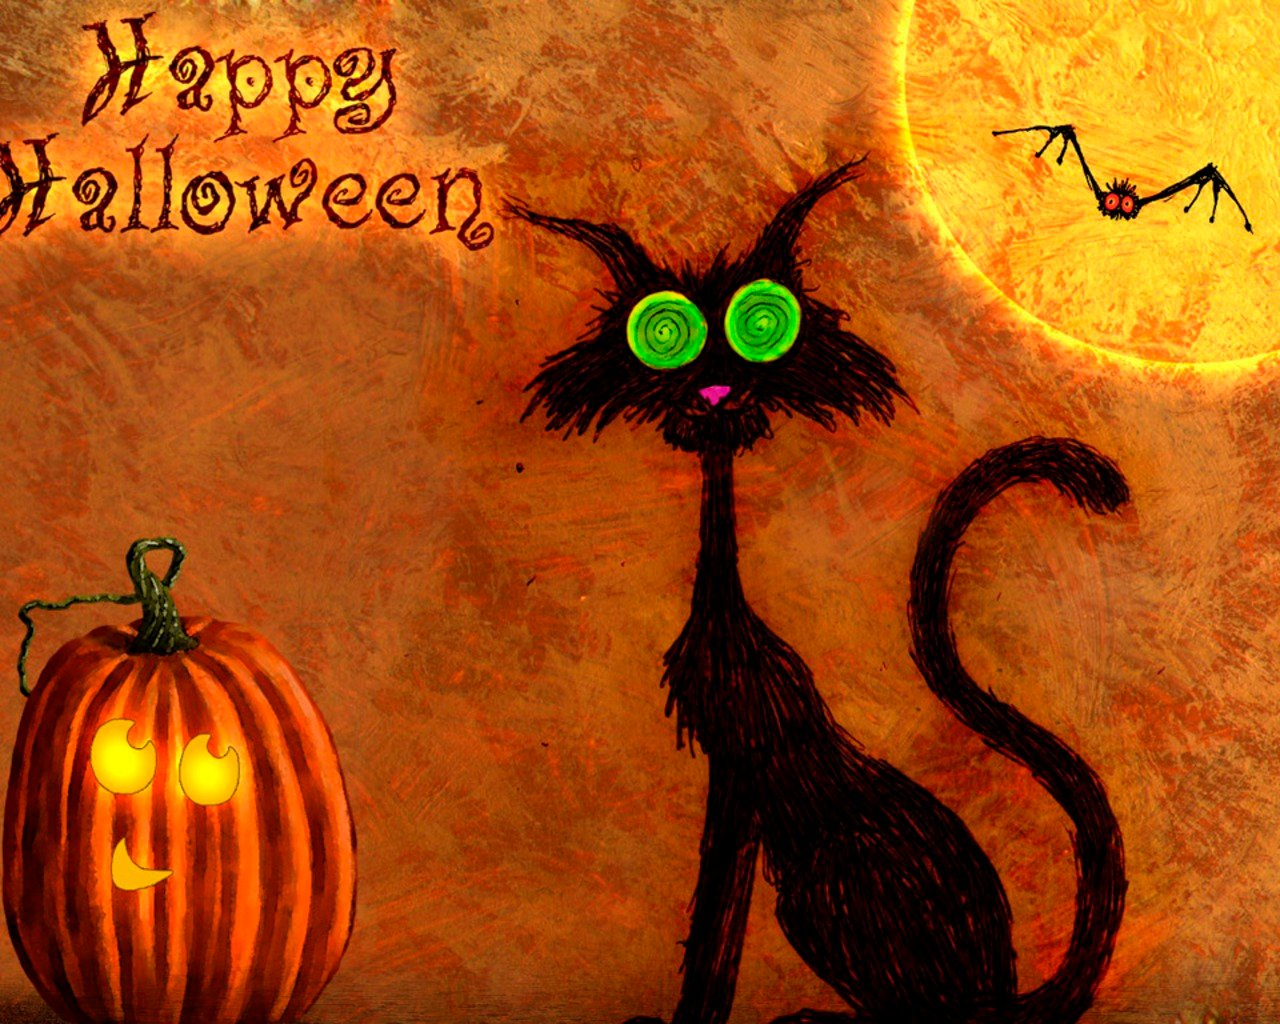 Happy Halloween 2011 Wallpaper Download Best Wallpapers 1280x1024